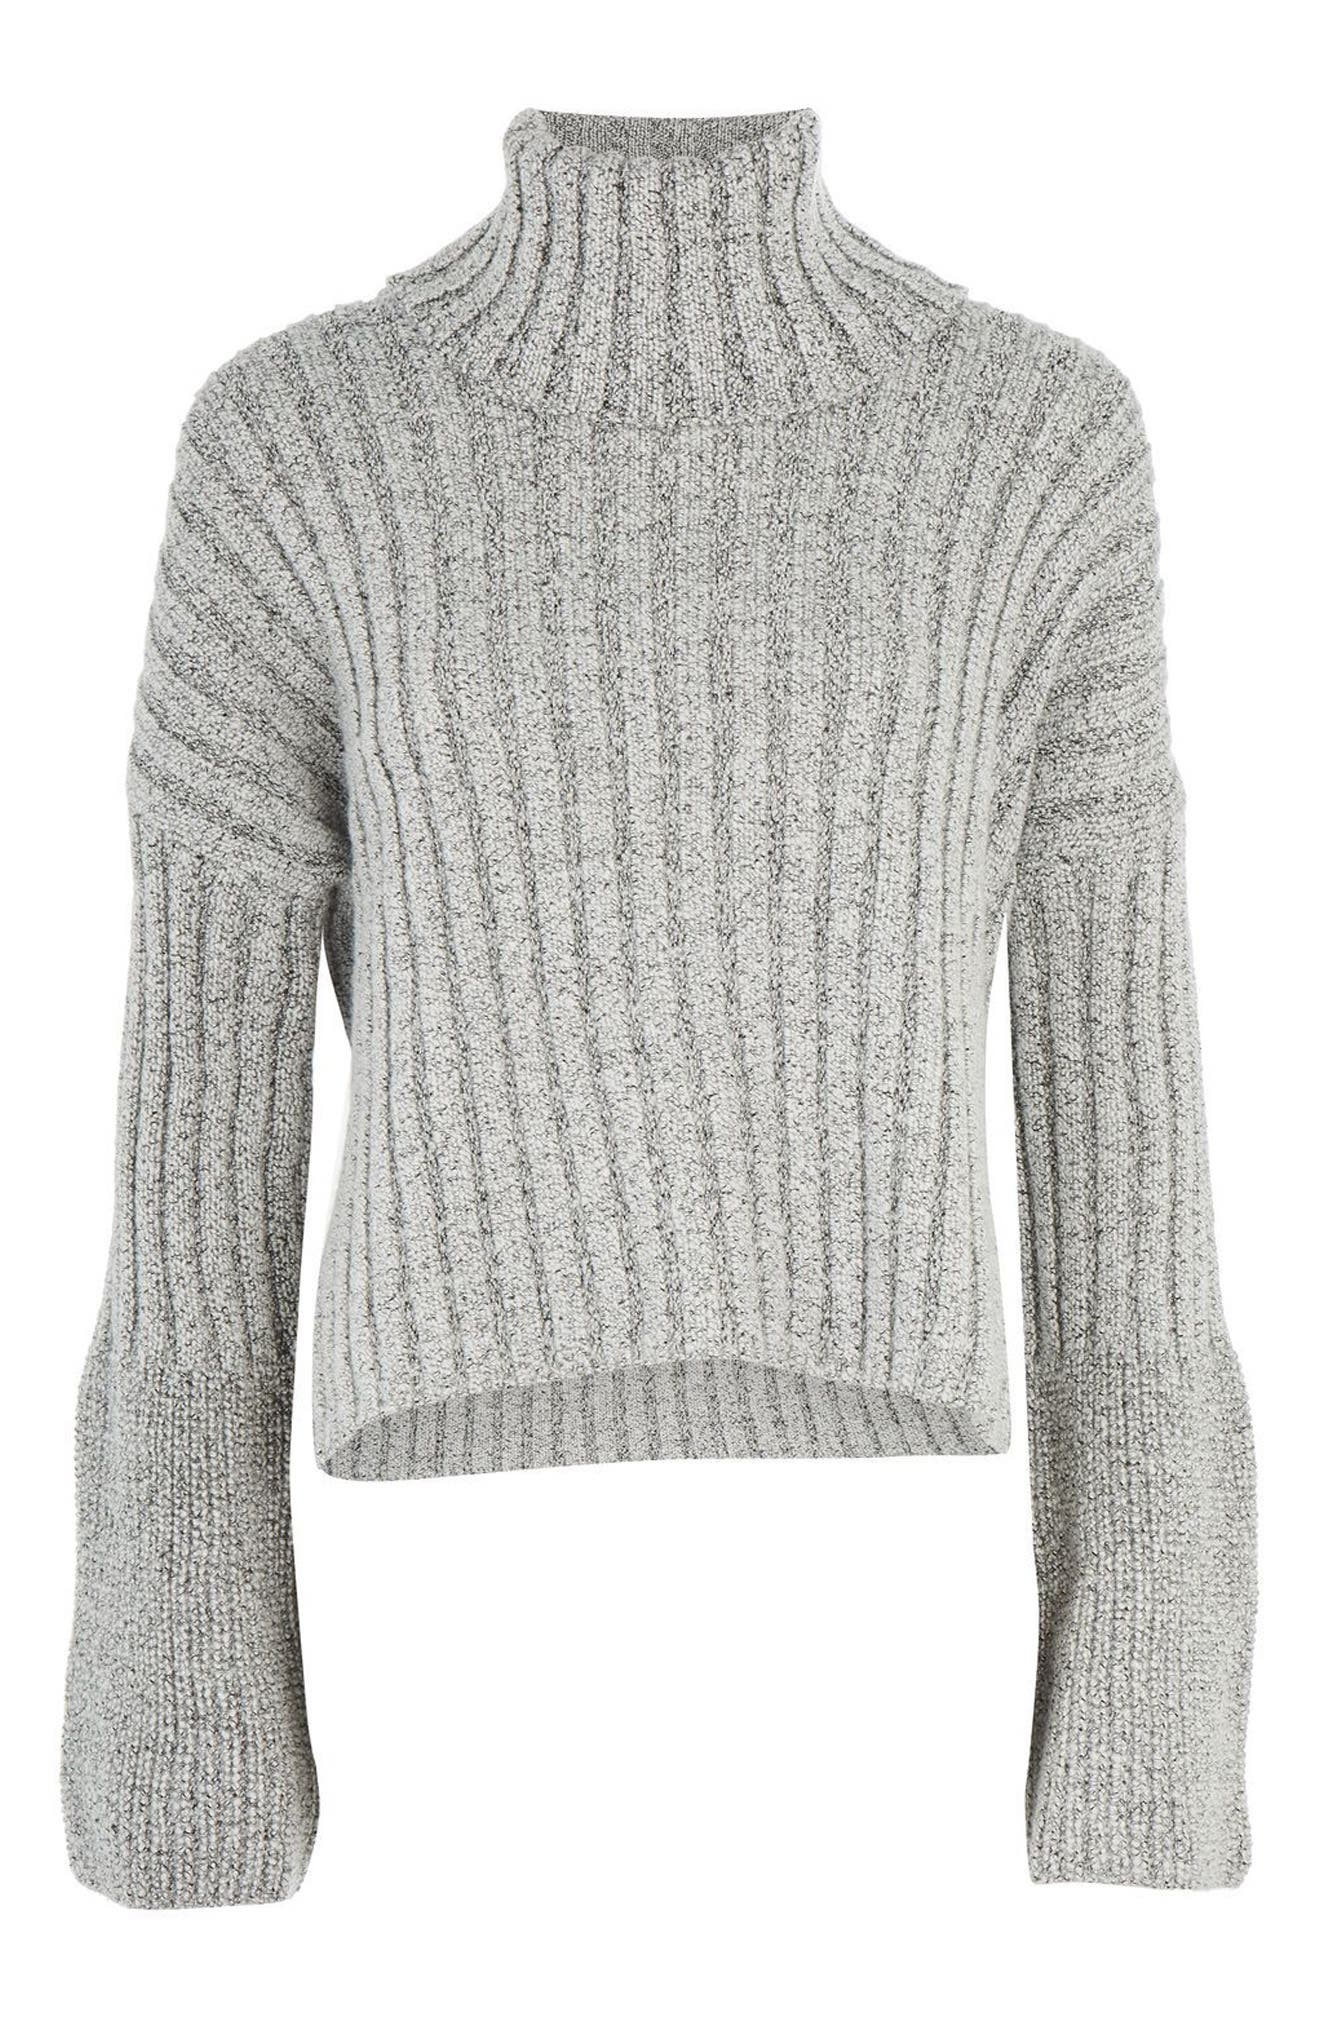 Main Image - Topshop Flare Cuff Turtleneck Sweater